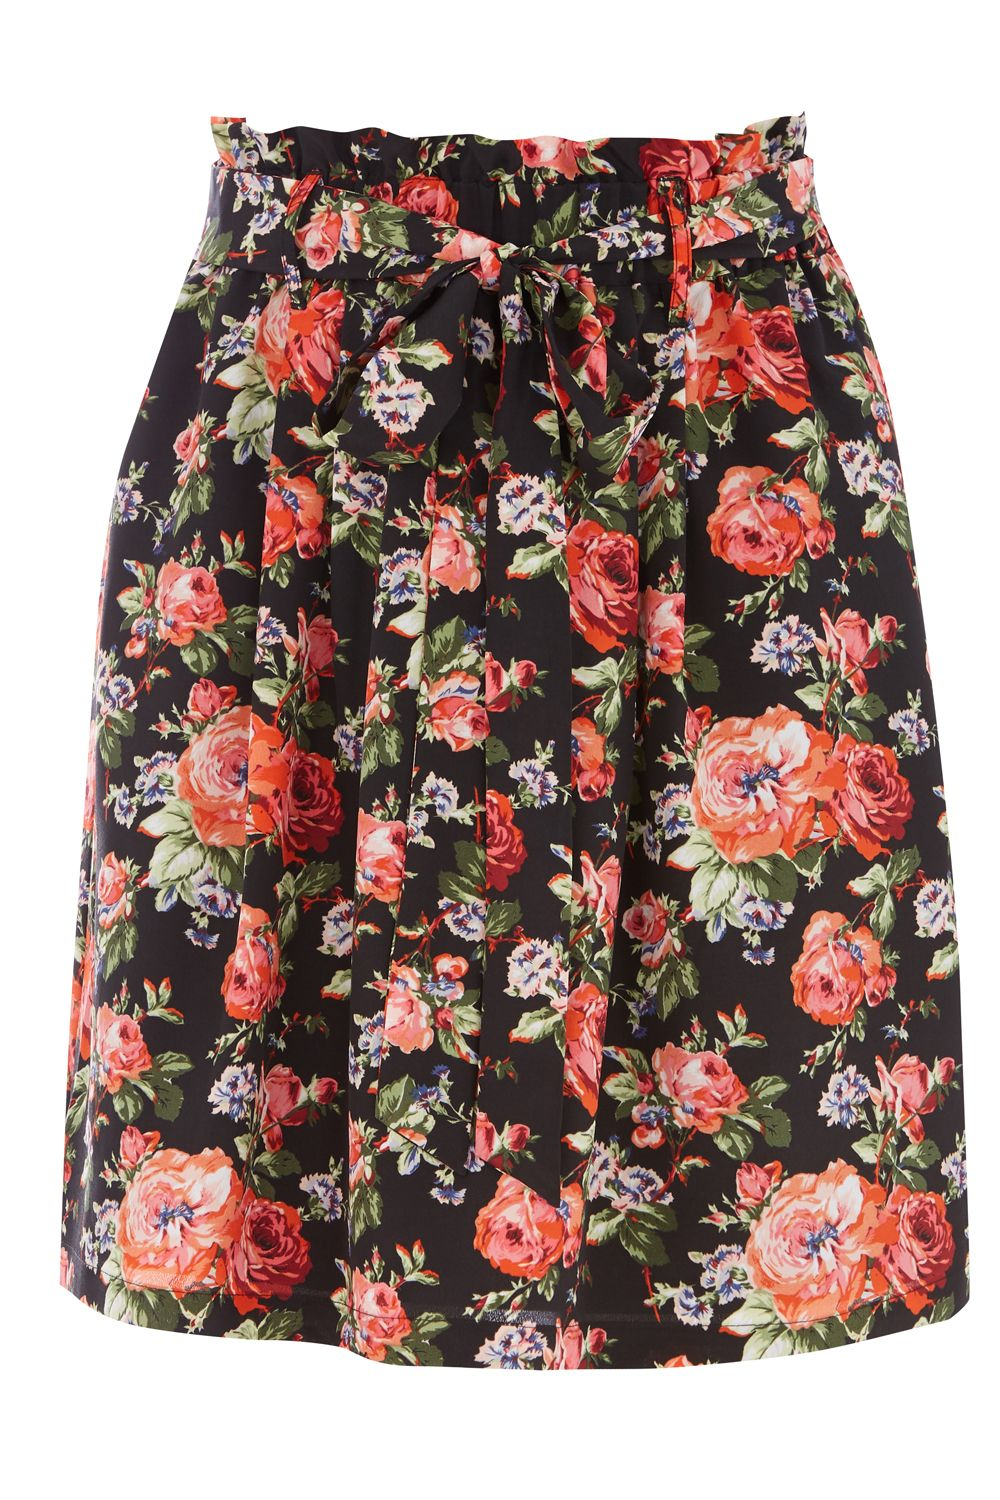 Oasis PAPERBAG ROSE SKIRT, Multi-Coloured